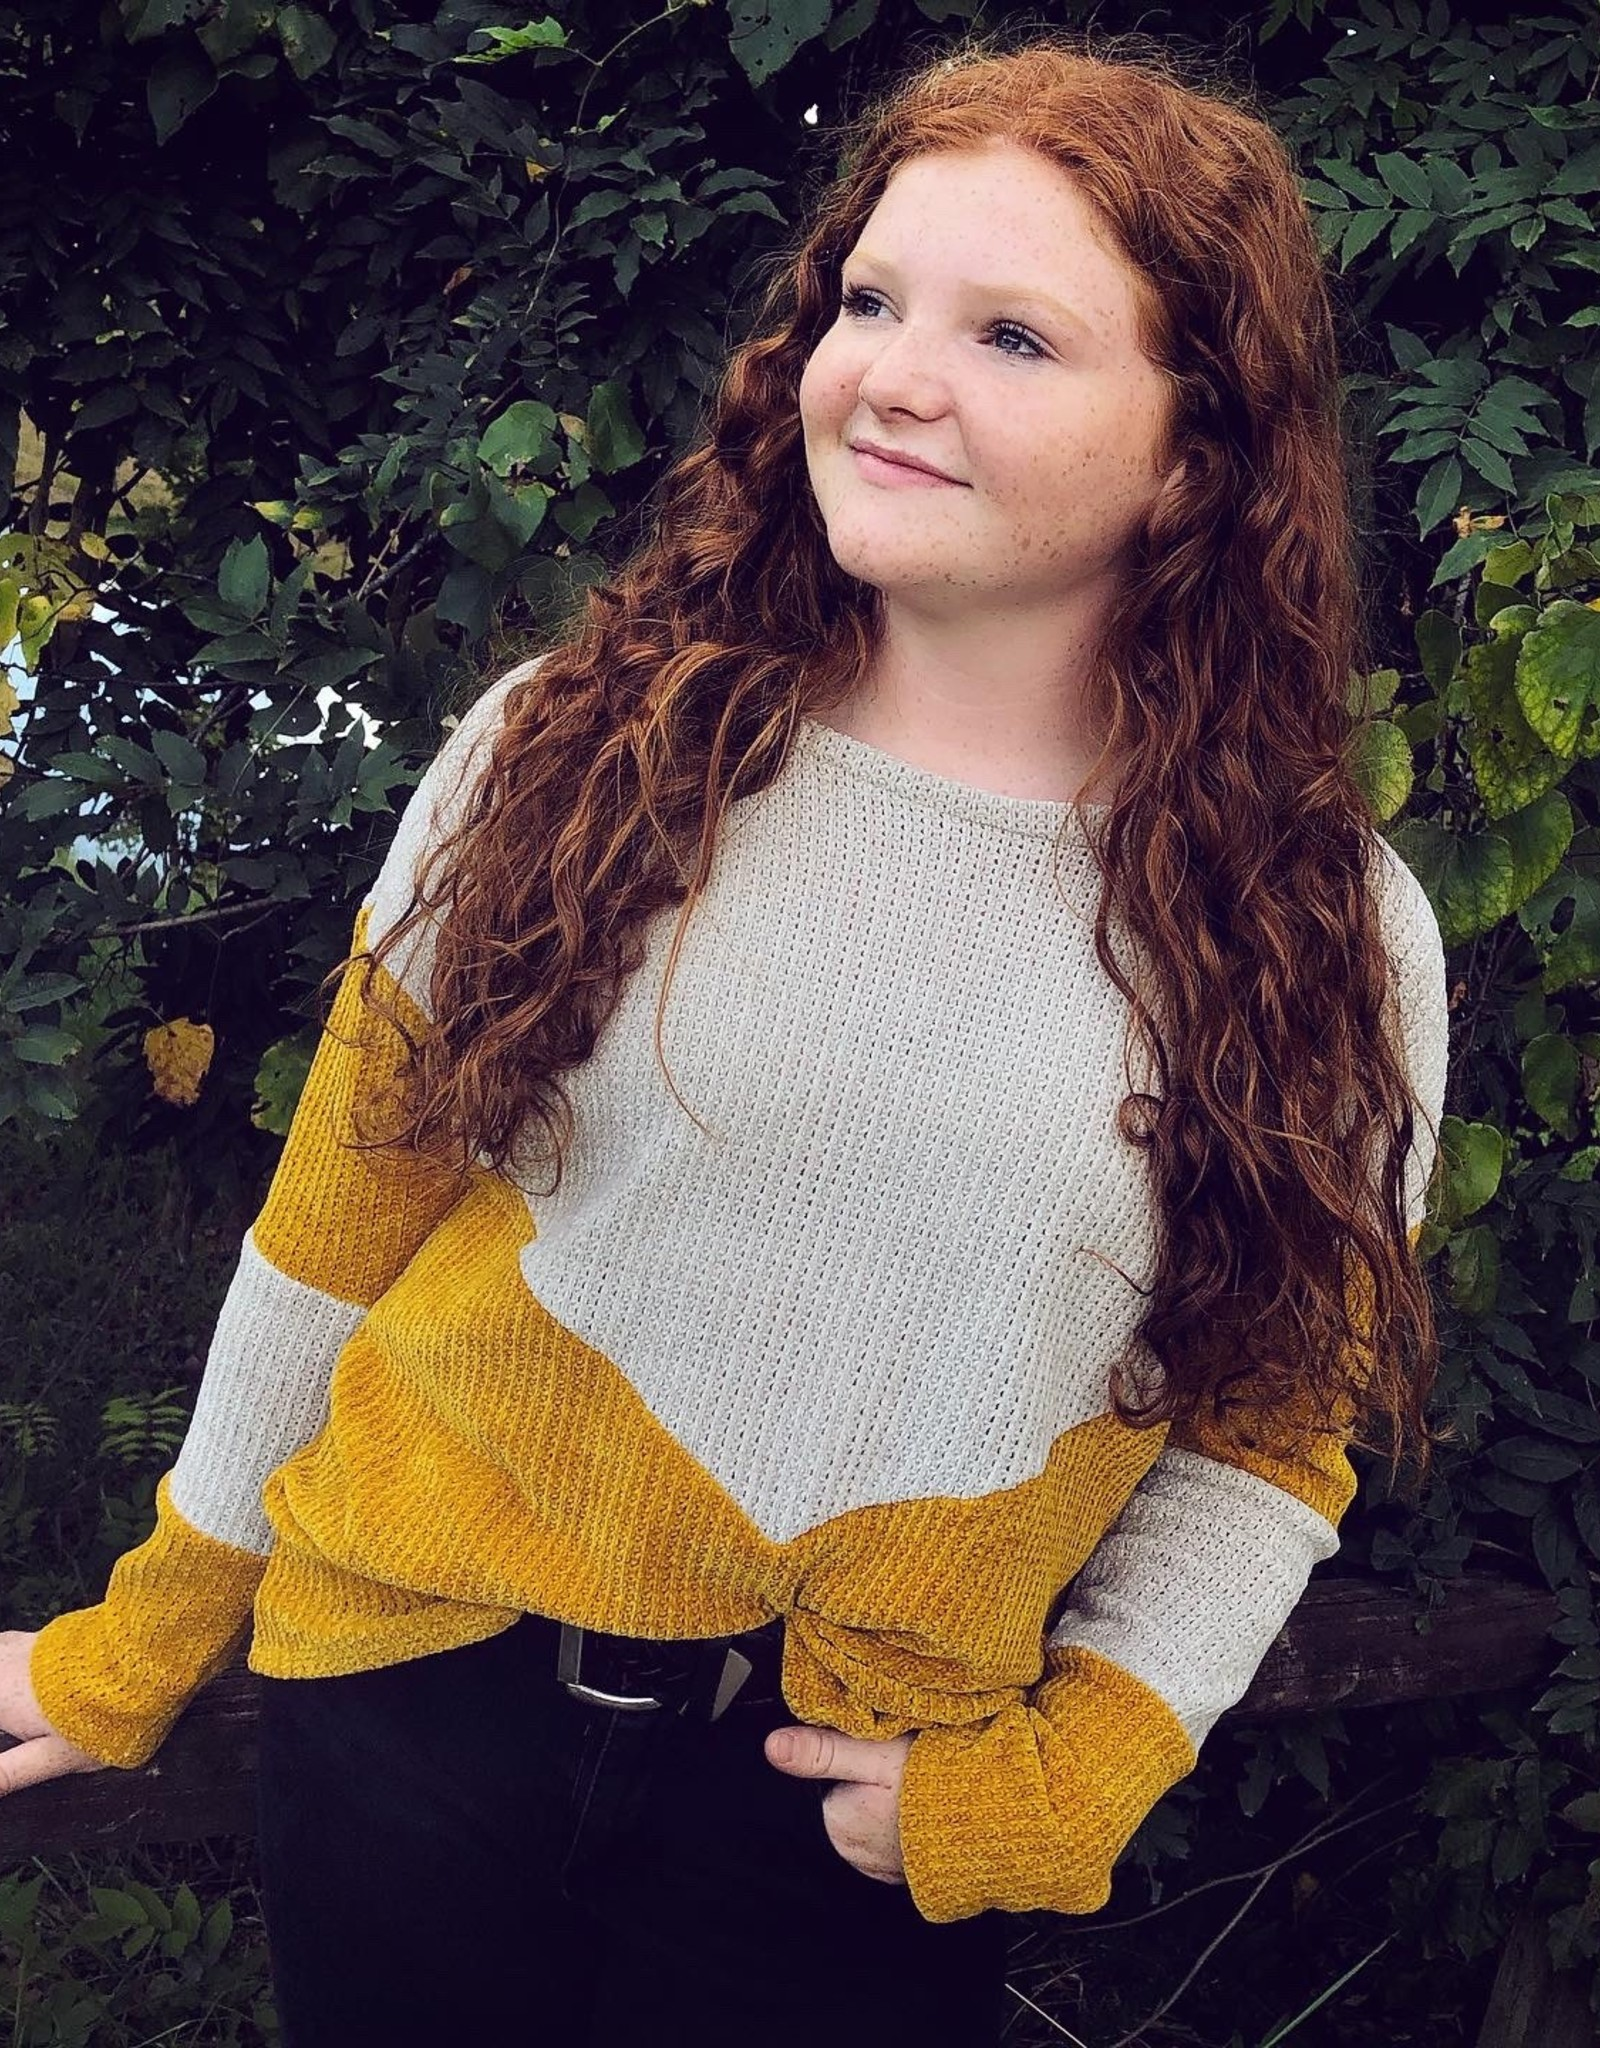 Leah Crushed Velvet Sweater in Mustard